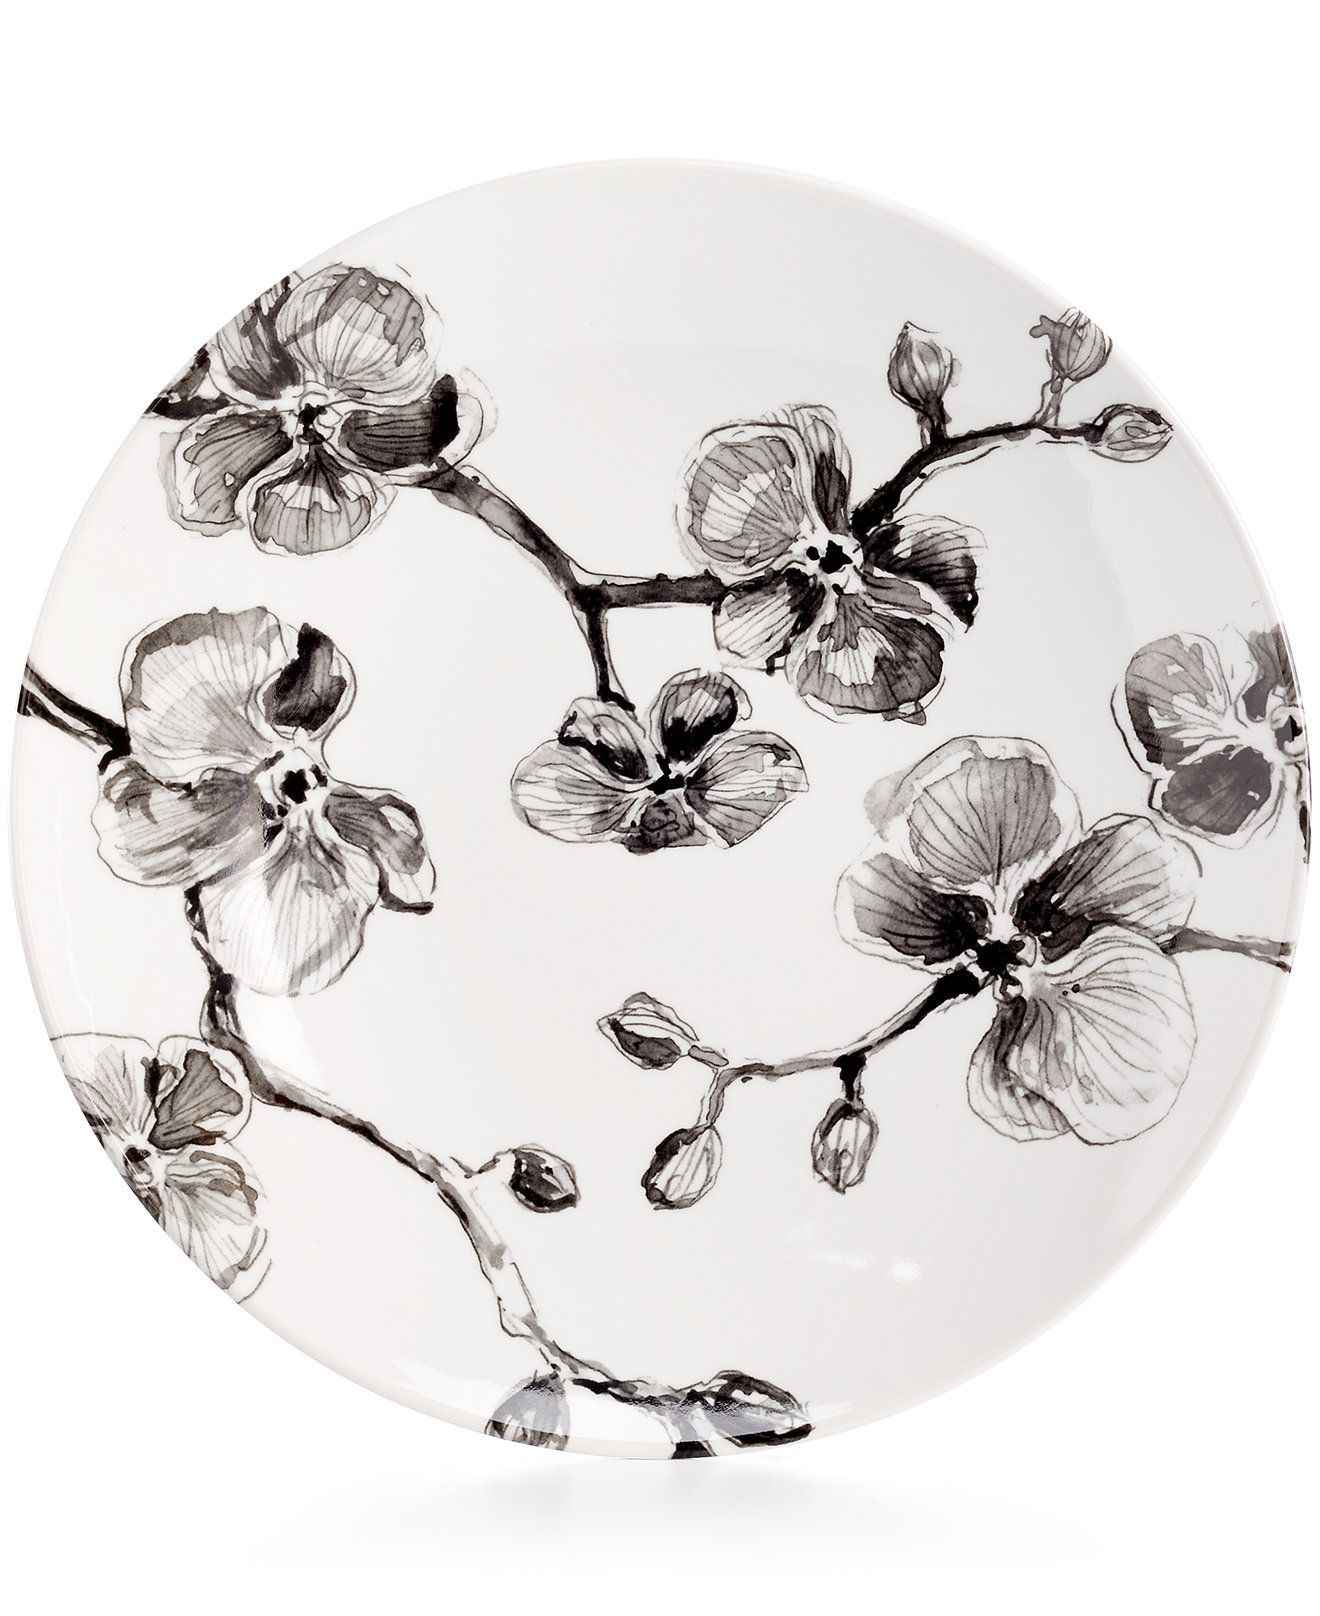 Macy Wedding Gifts: MADHOUSE By Michael Aram Melamime Plates. They Don't Look